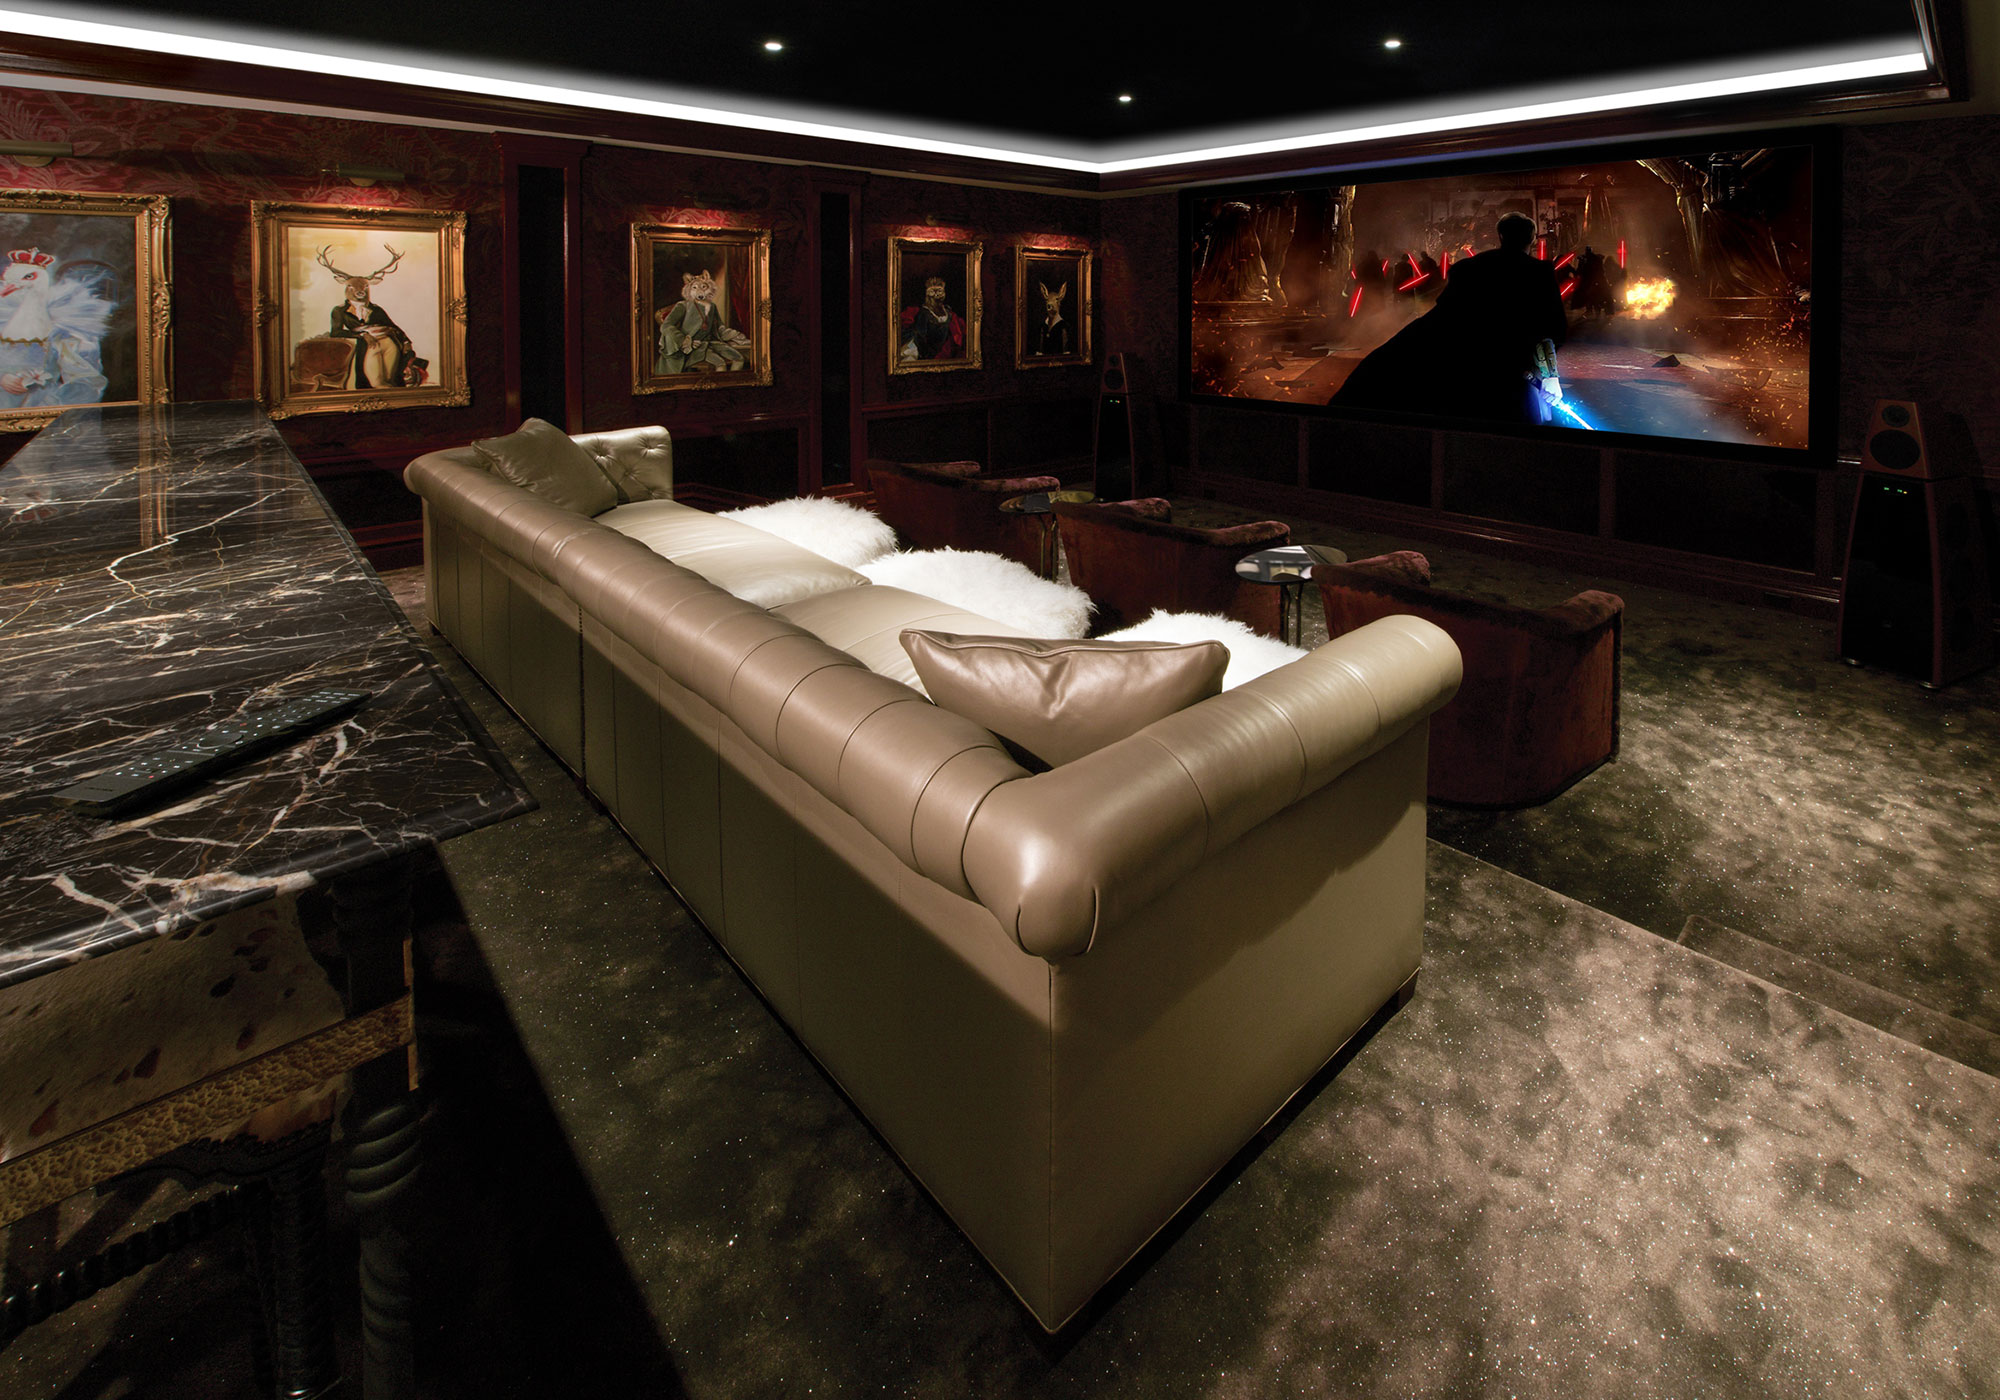 Theater, projection system, movie screen, speakers, surround sound, freestanding, LED lighting, alcove,